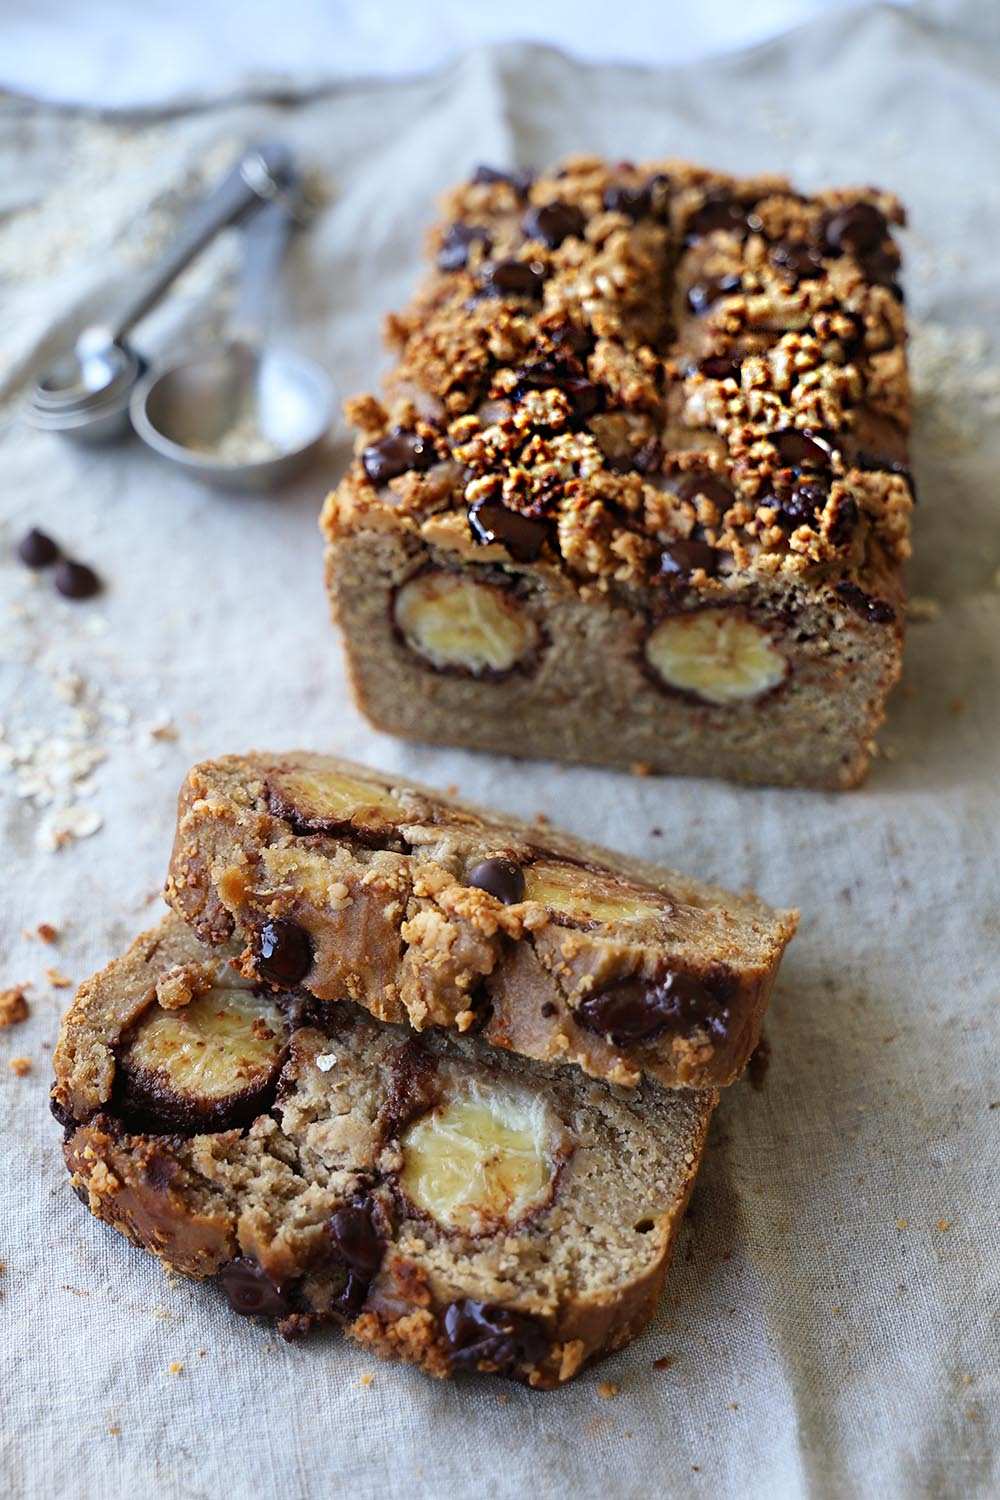 Chocolate bananabread with peanut butter crumbles